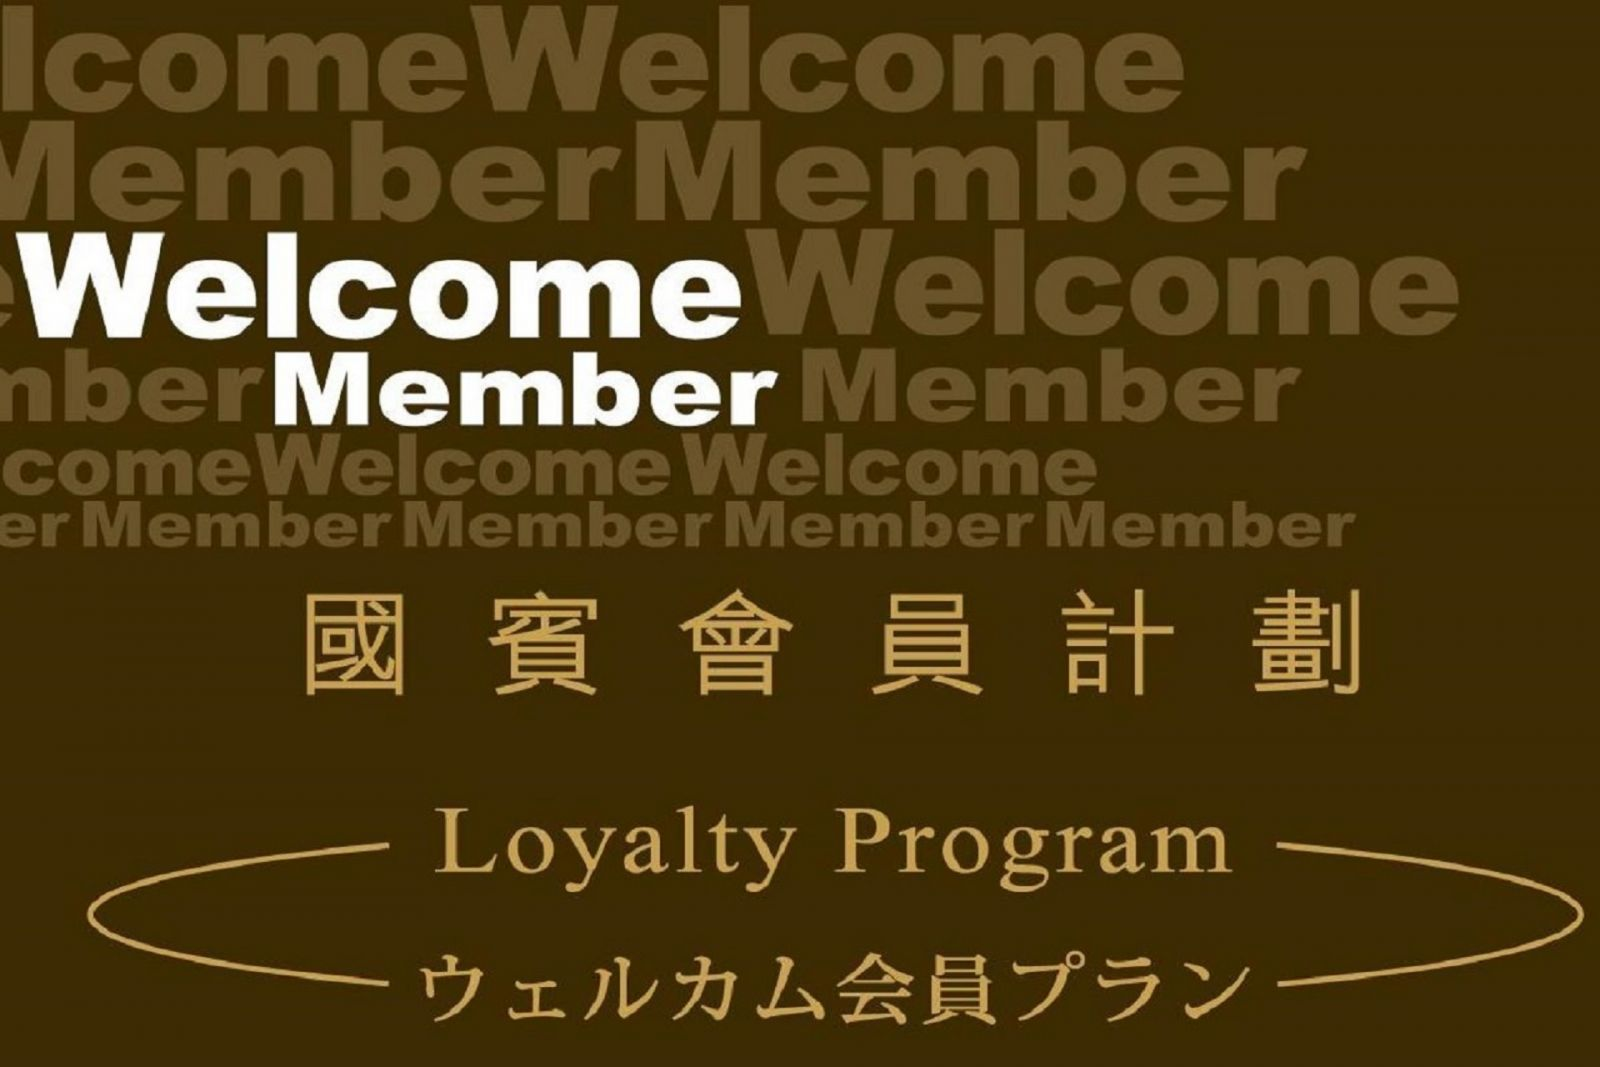 We are no longer accept the application for Welcome Member